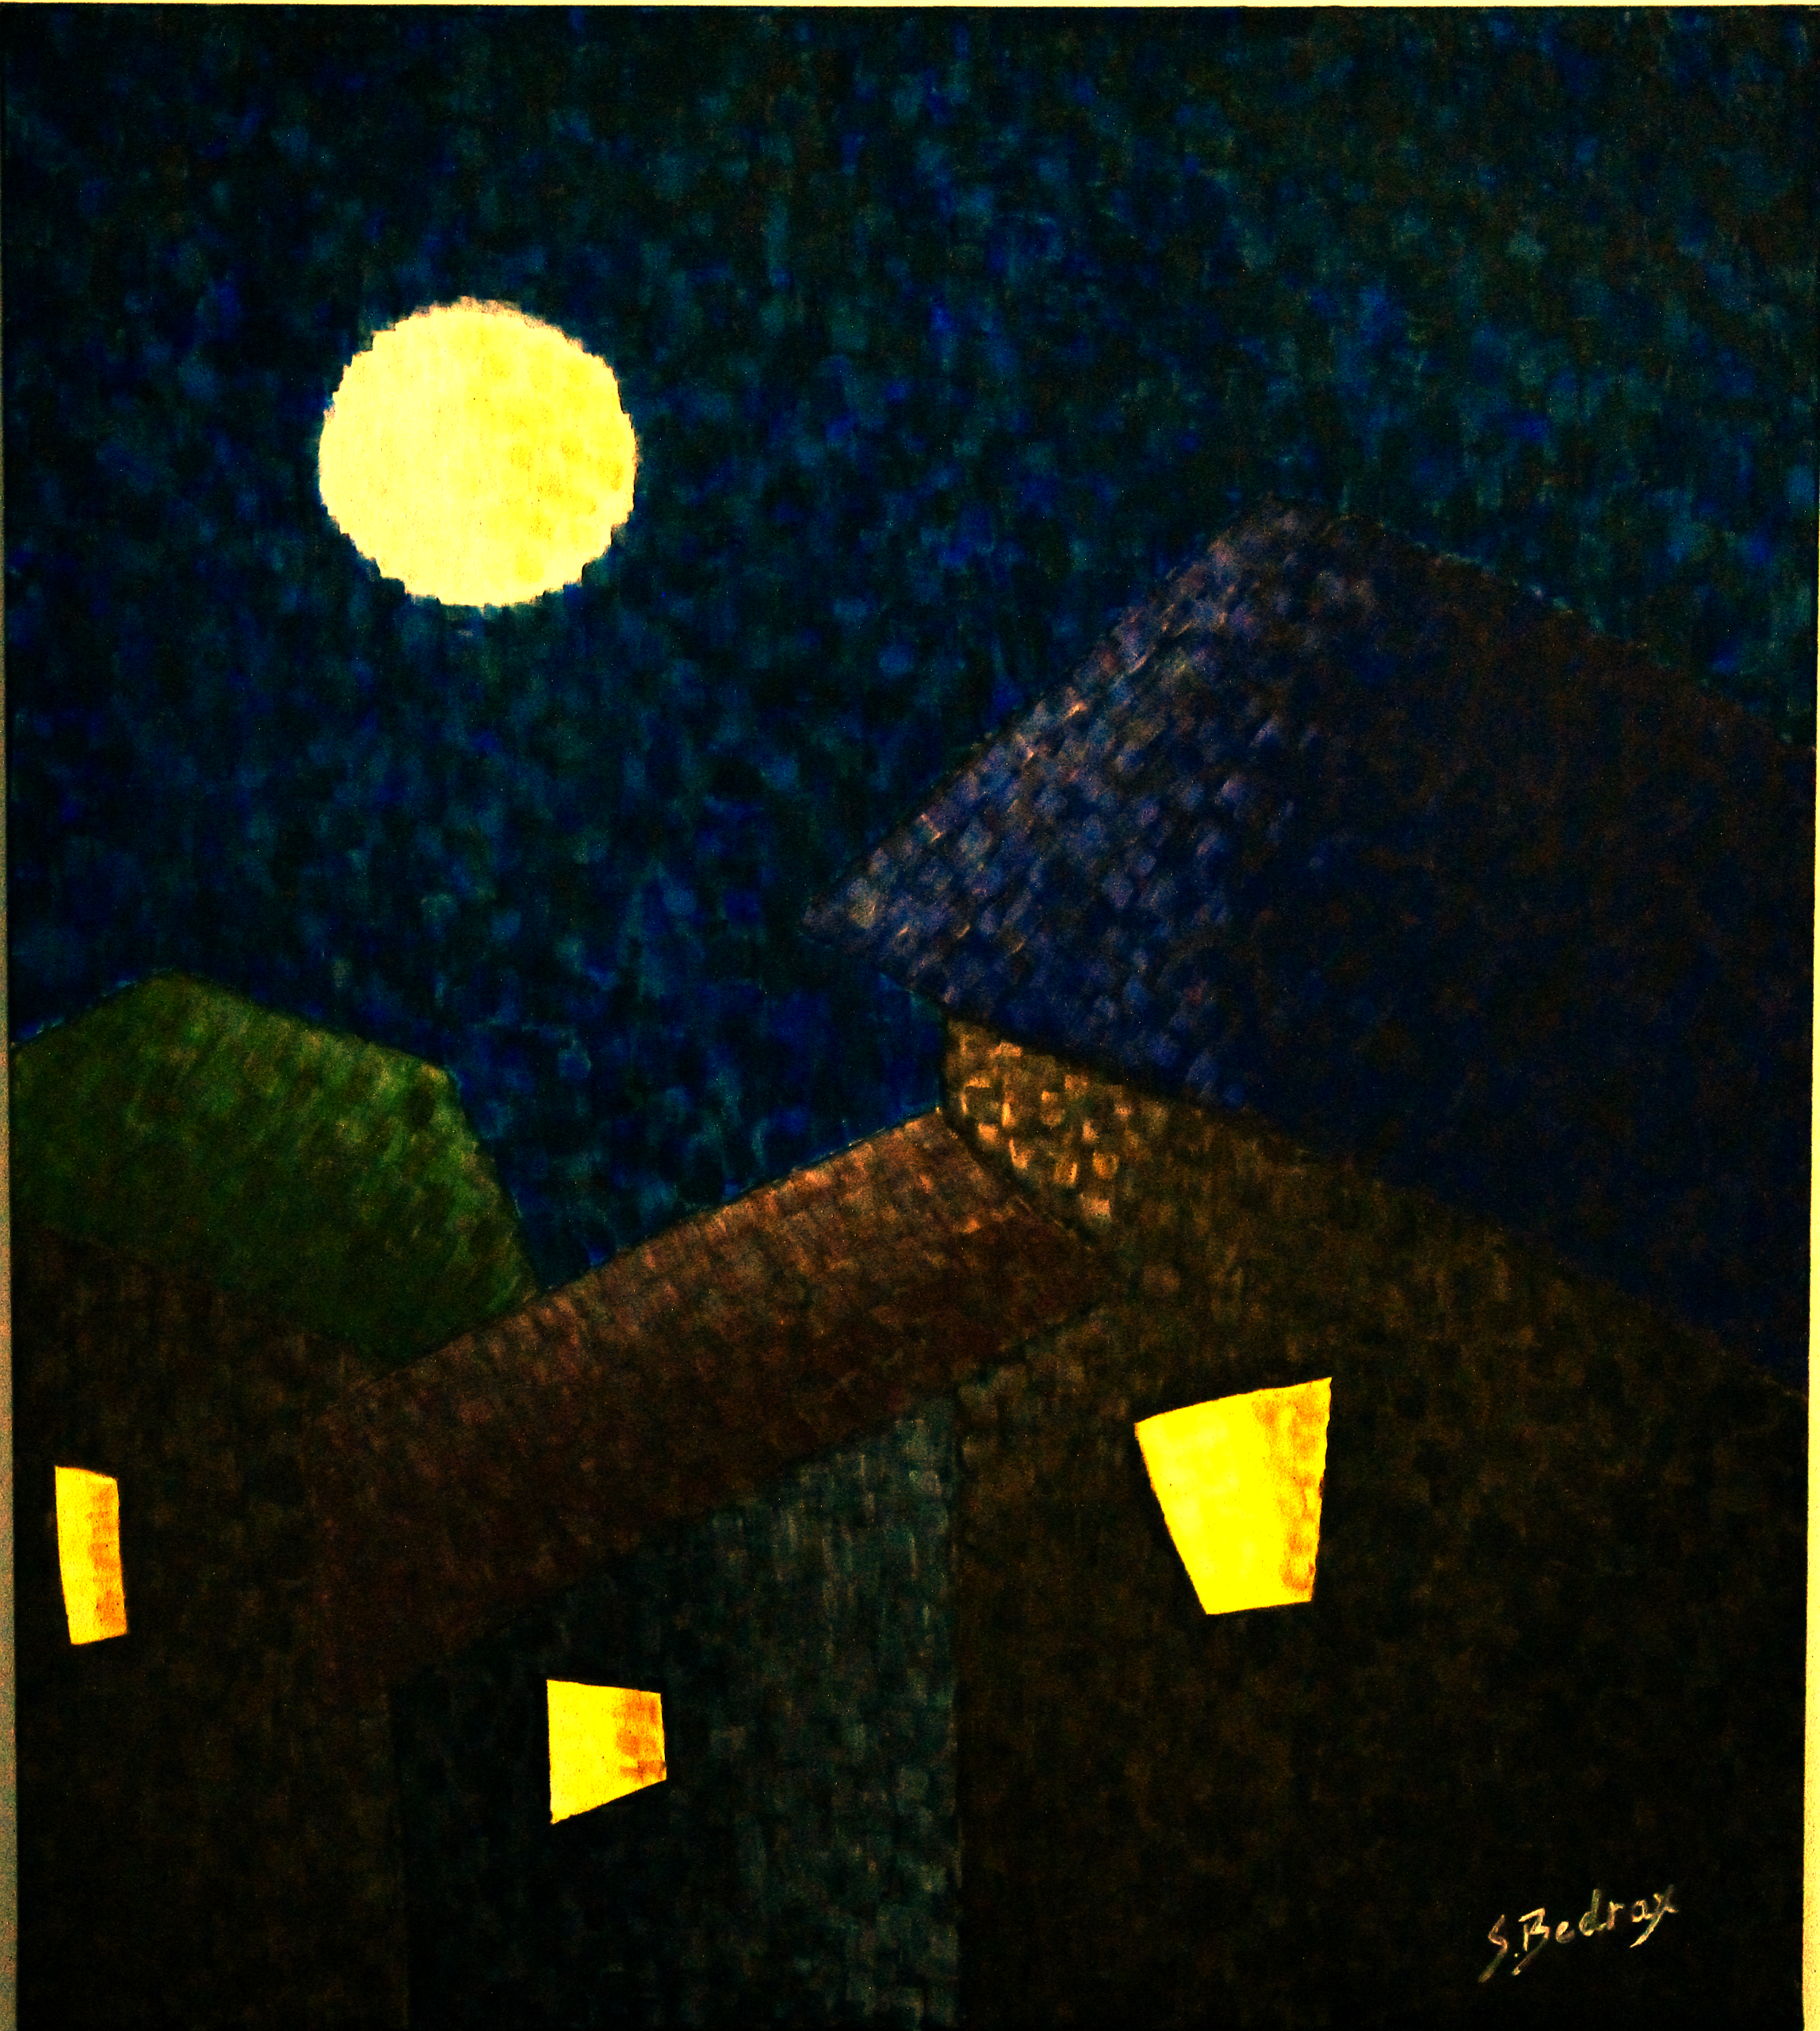 Susie Bedrax - The Village at Night